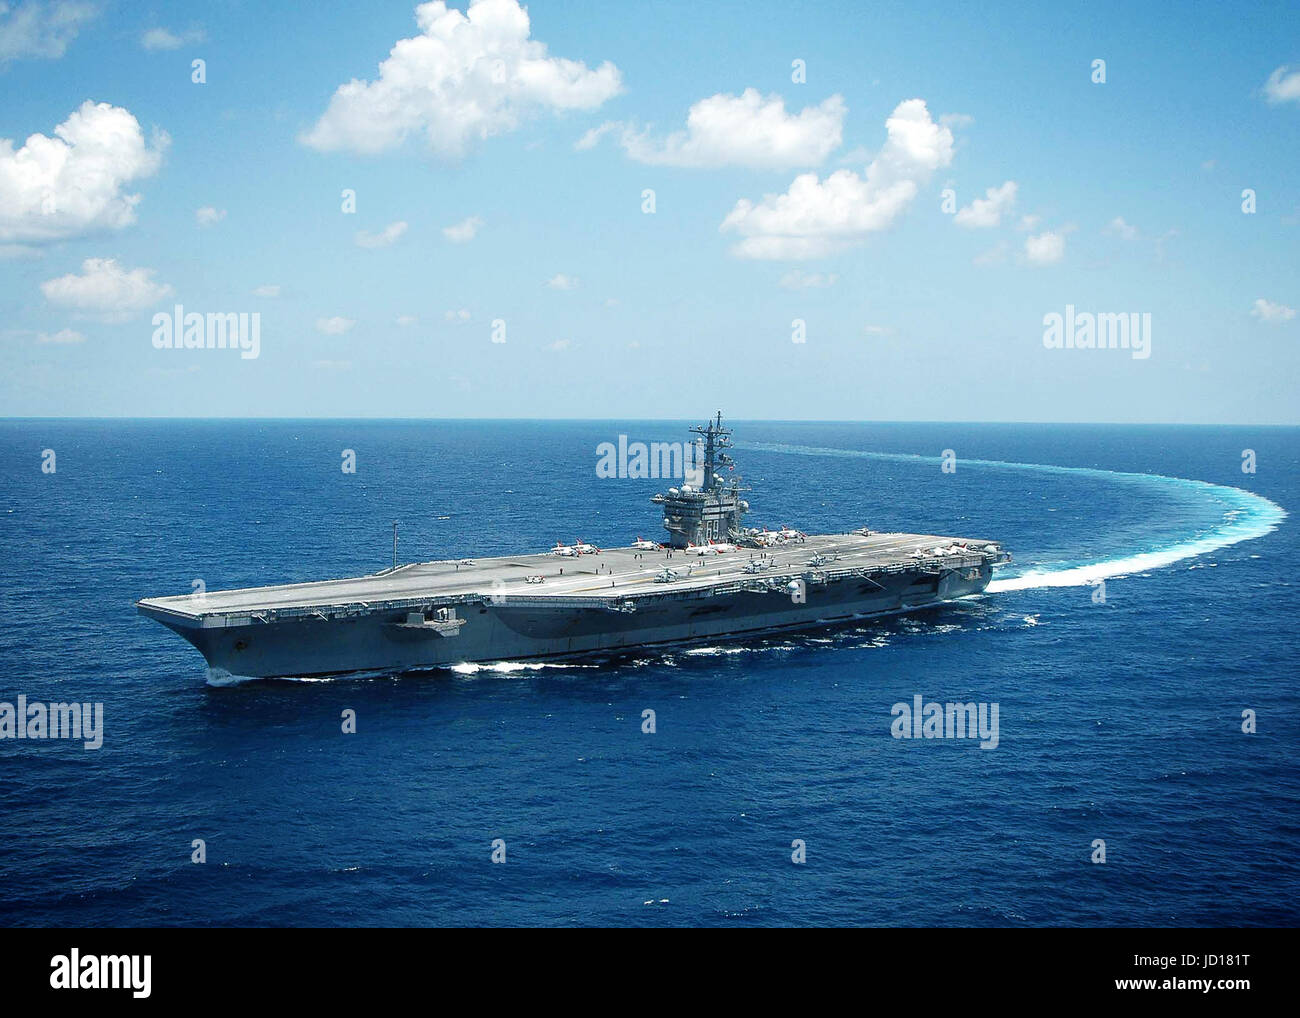 The Nimitz-class aircraft carrier USS Dwight D. Eisenhower (CVN 69) conducts a turn in the Atlantic Ocean. U.S. Stock Photo